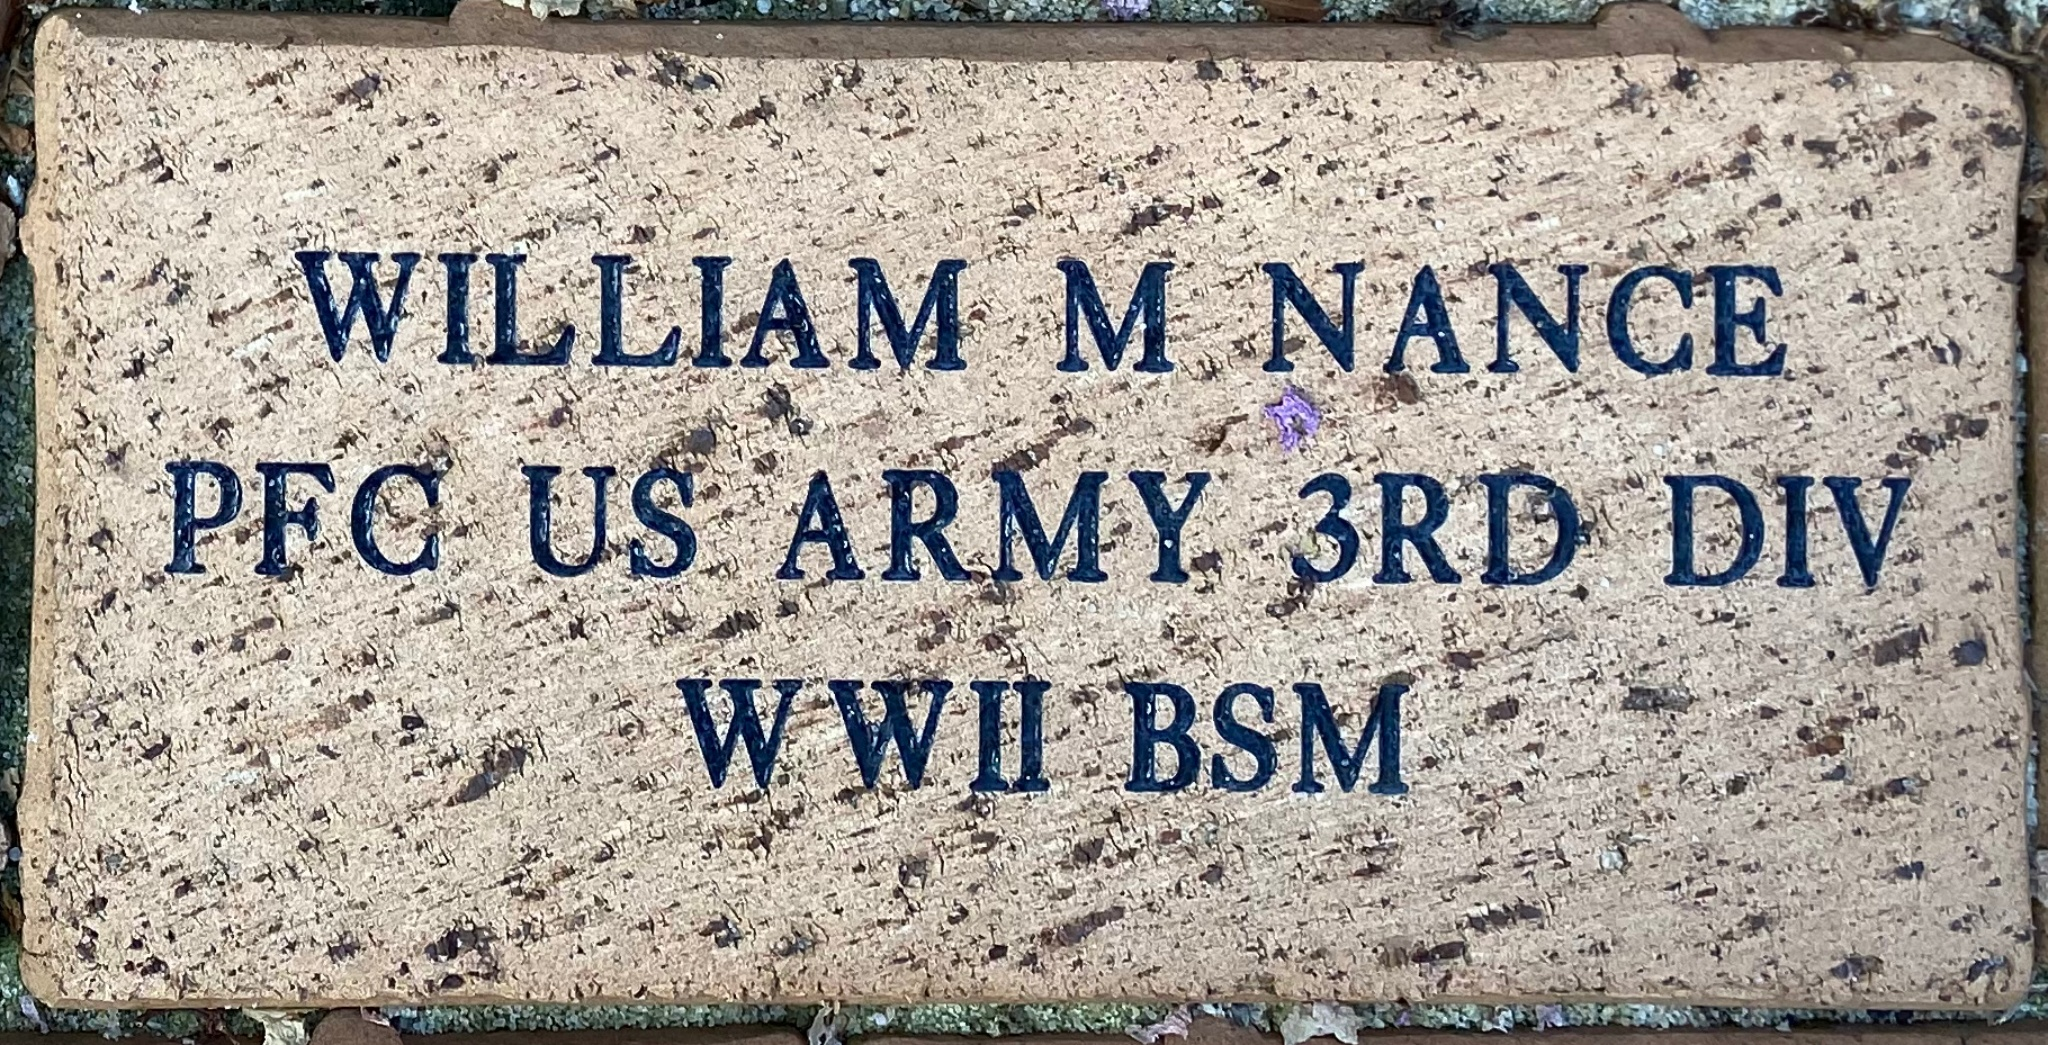 WILLIAM M NANCE PFC US ARMY 3RD DIV WWII BSM